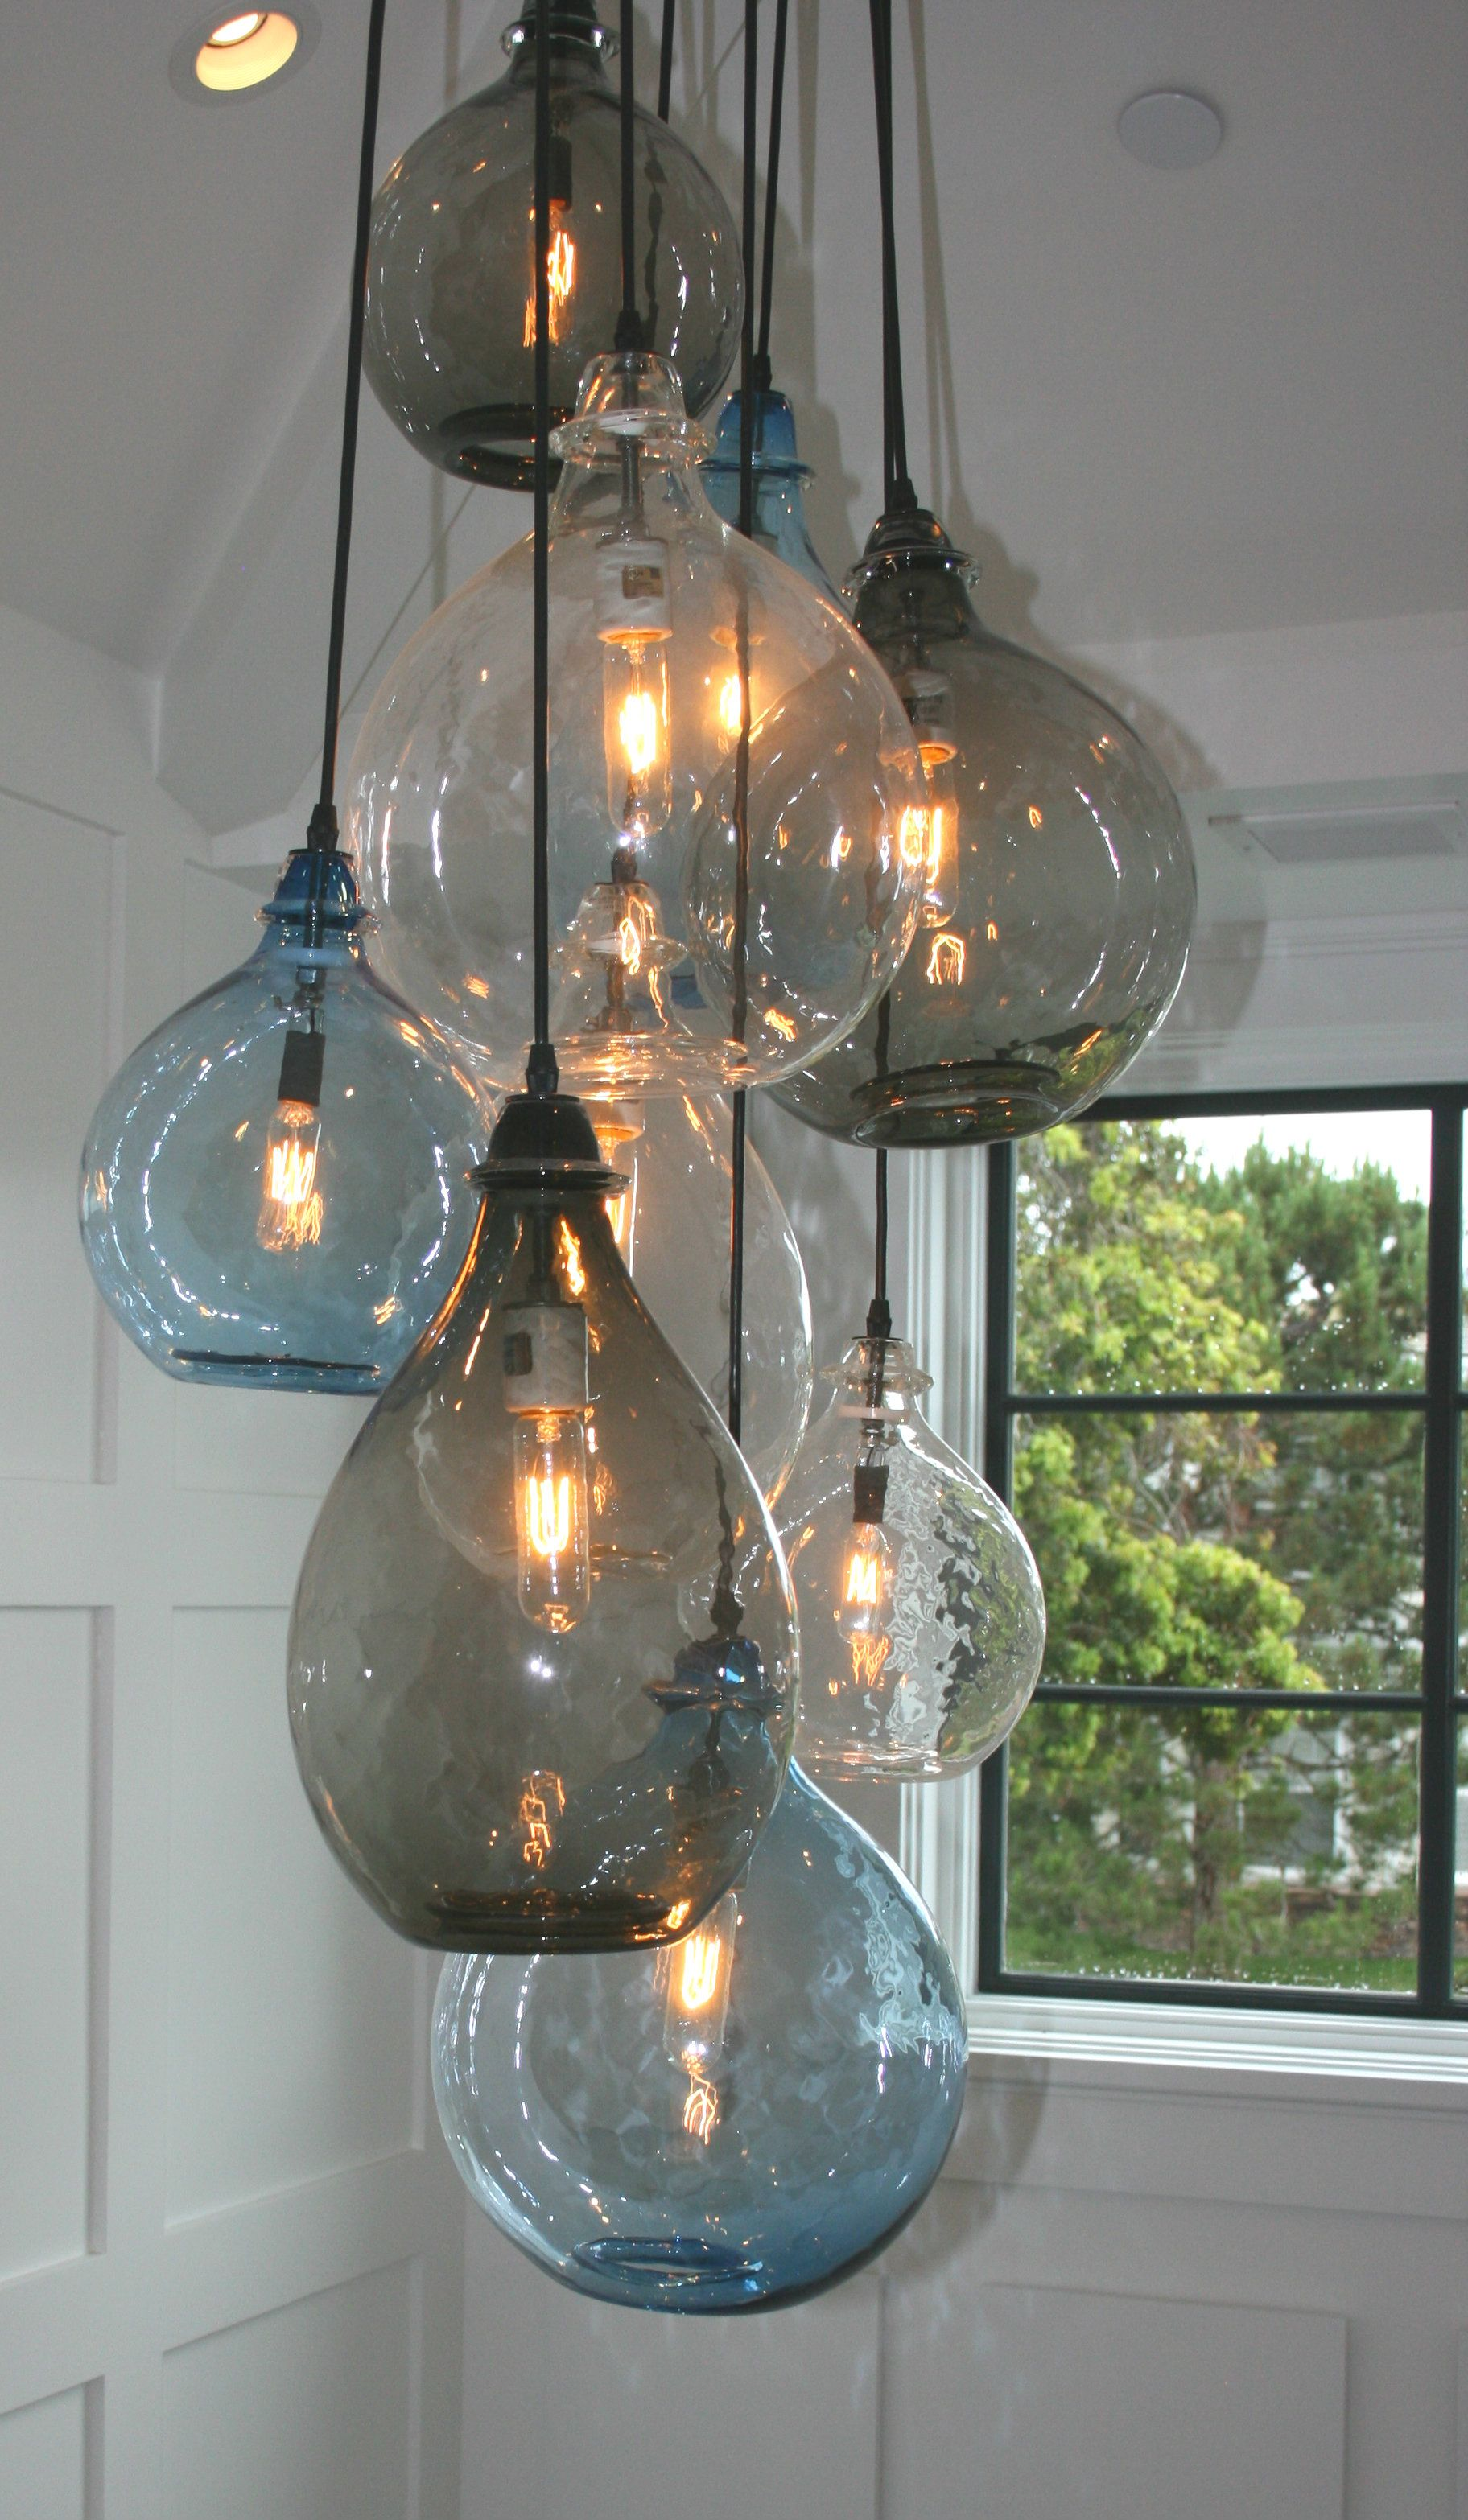 Hängelampe Treppenhaus Industrial Lighting Decor Ideas In 2019 Lampen Lampen